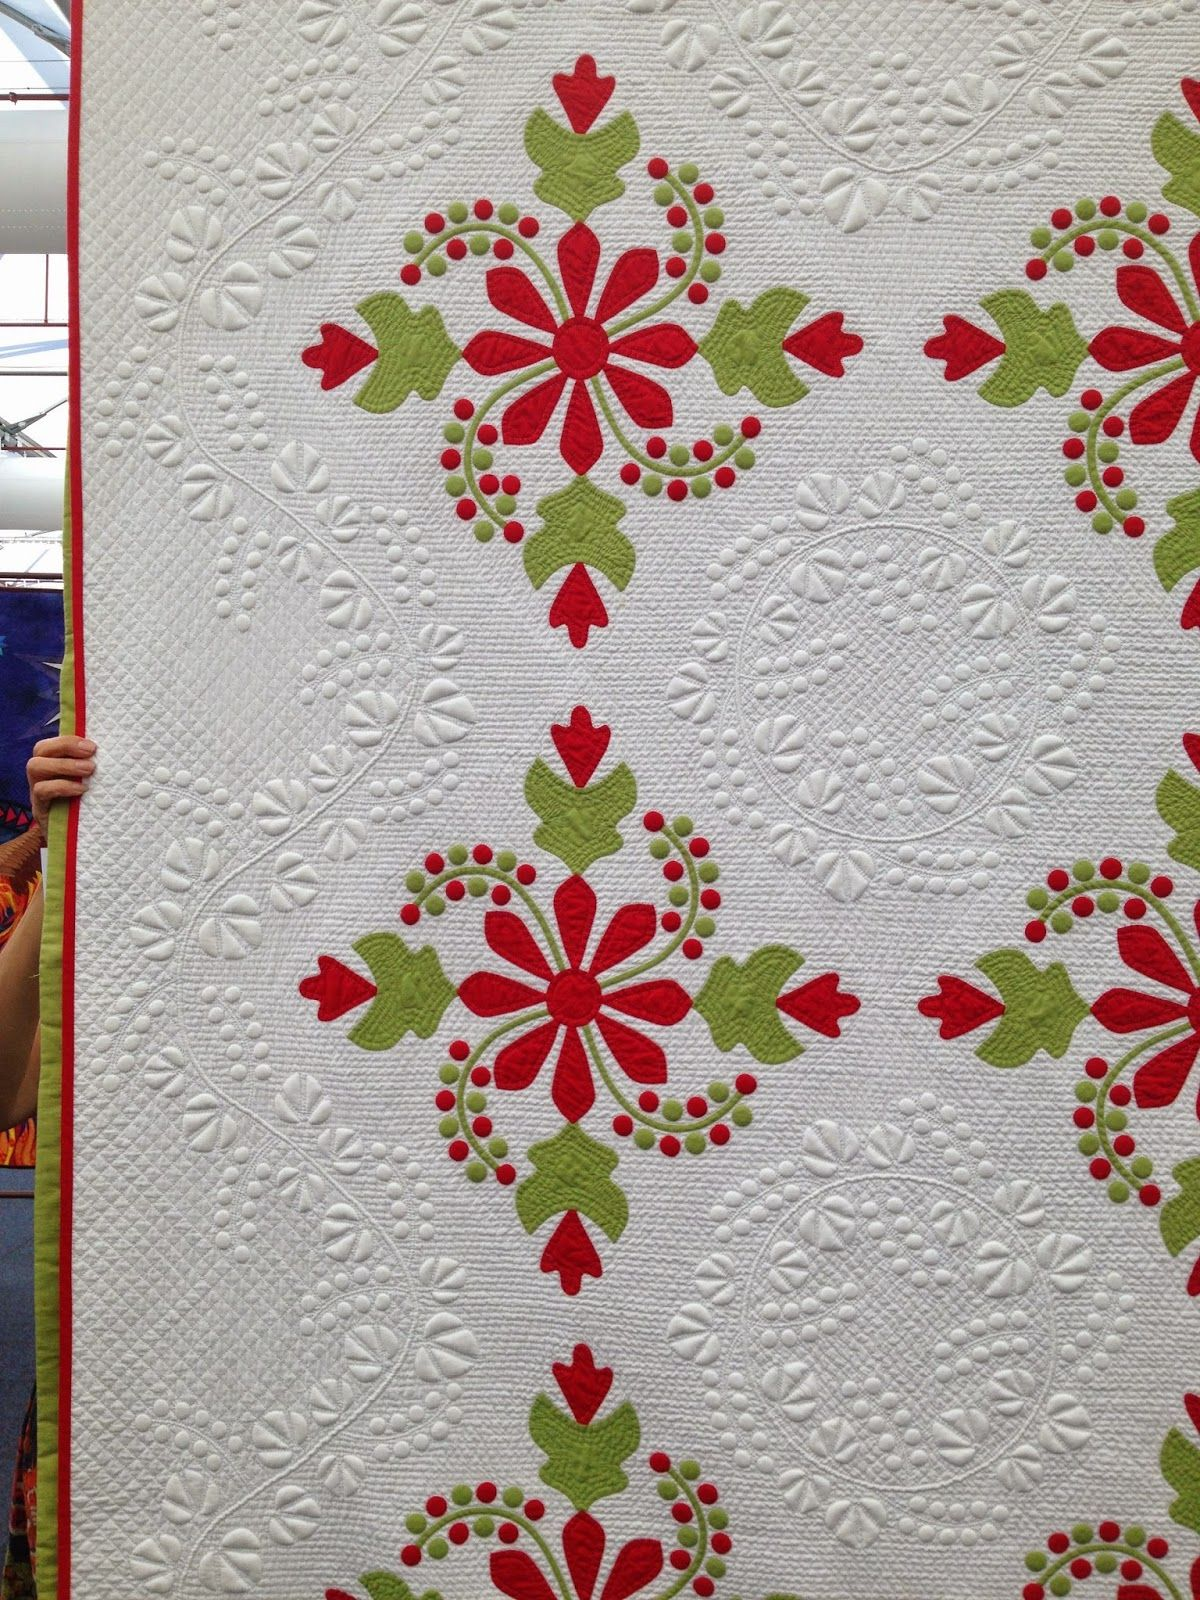 Pin by Pam Woods on Applique quilts Pinterest